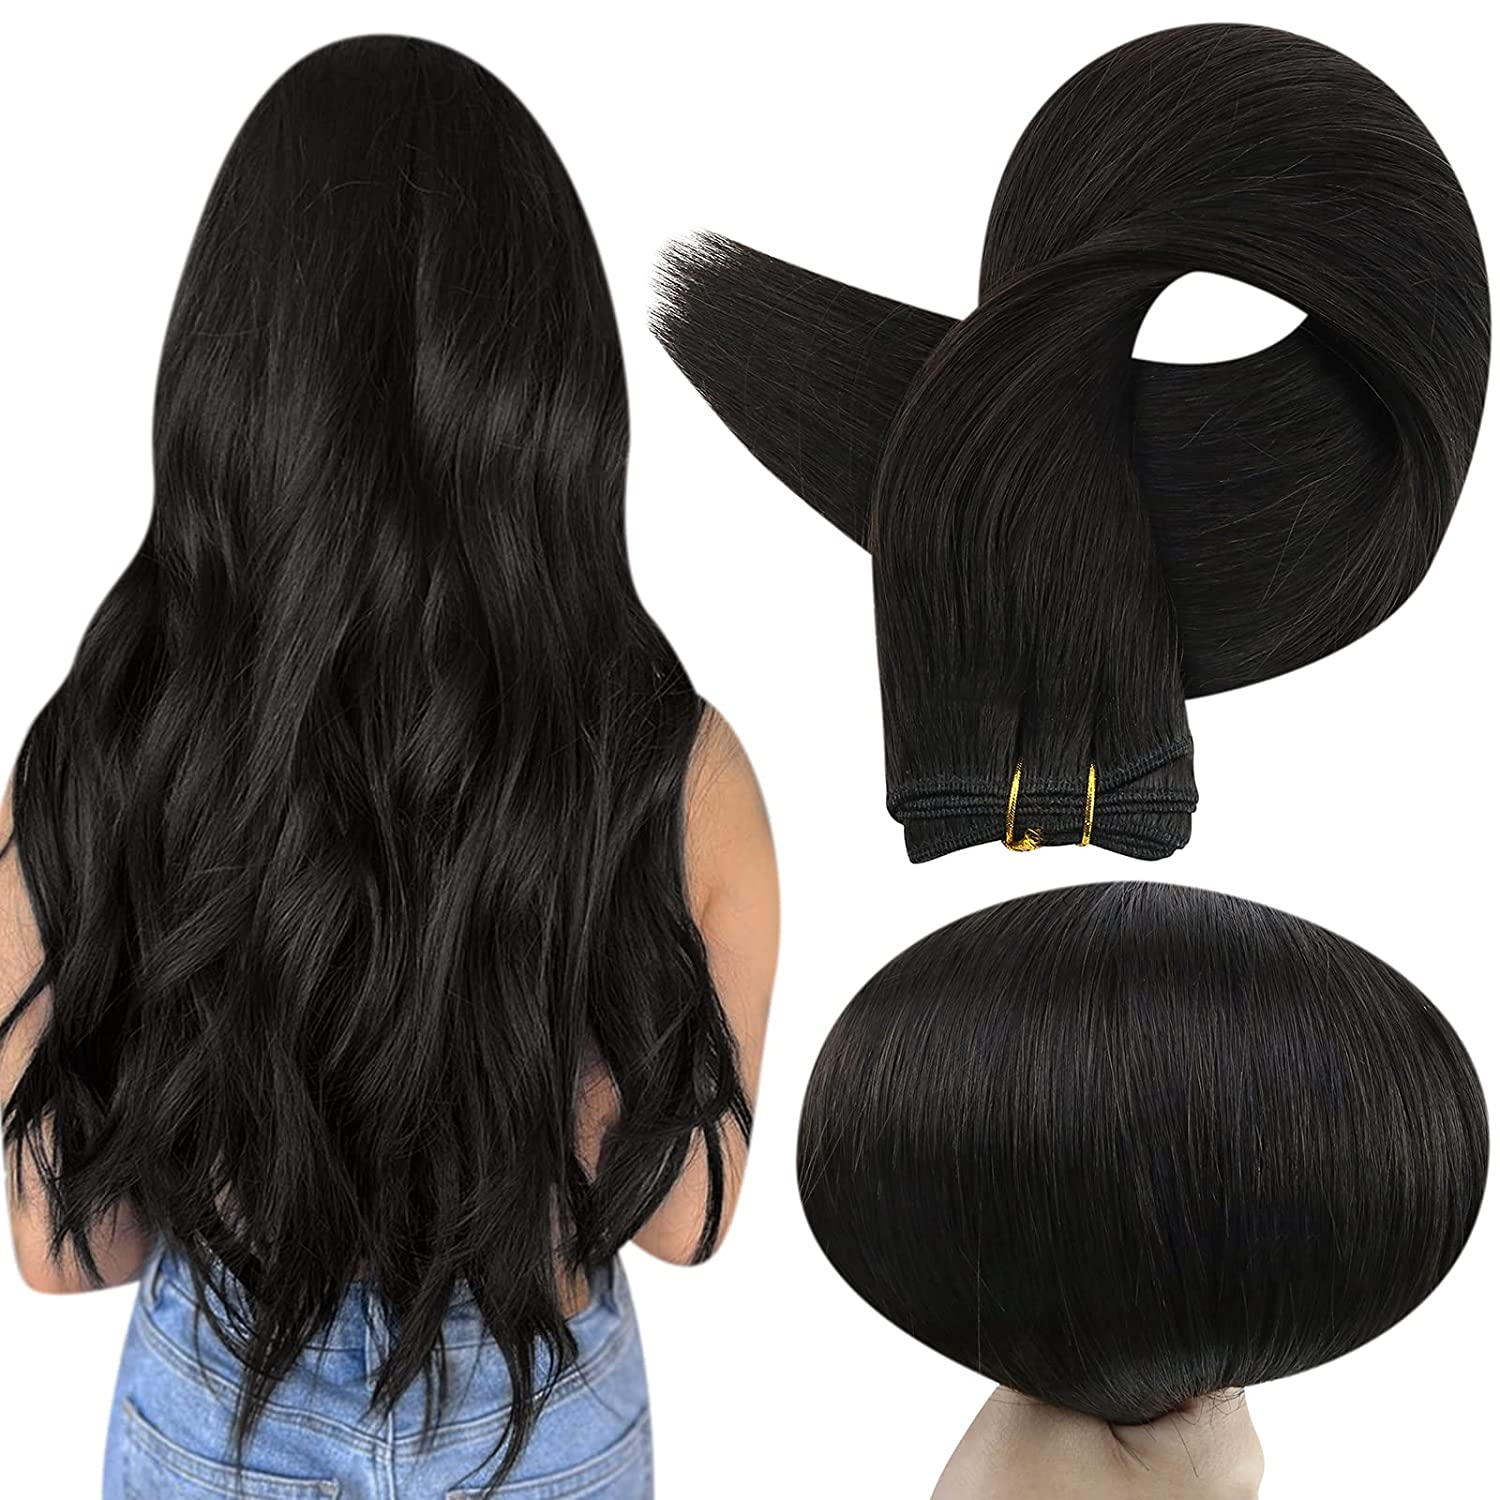 Full Shine Hair Weft 18 Extensions Outlet List price SALE Black Ha Human Inch